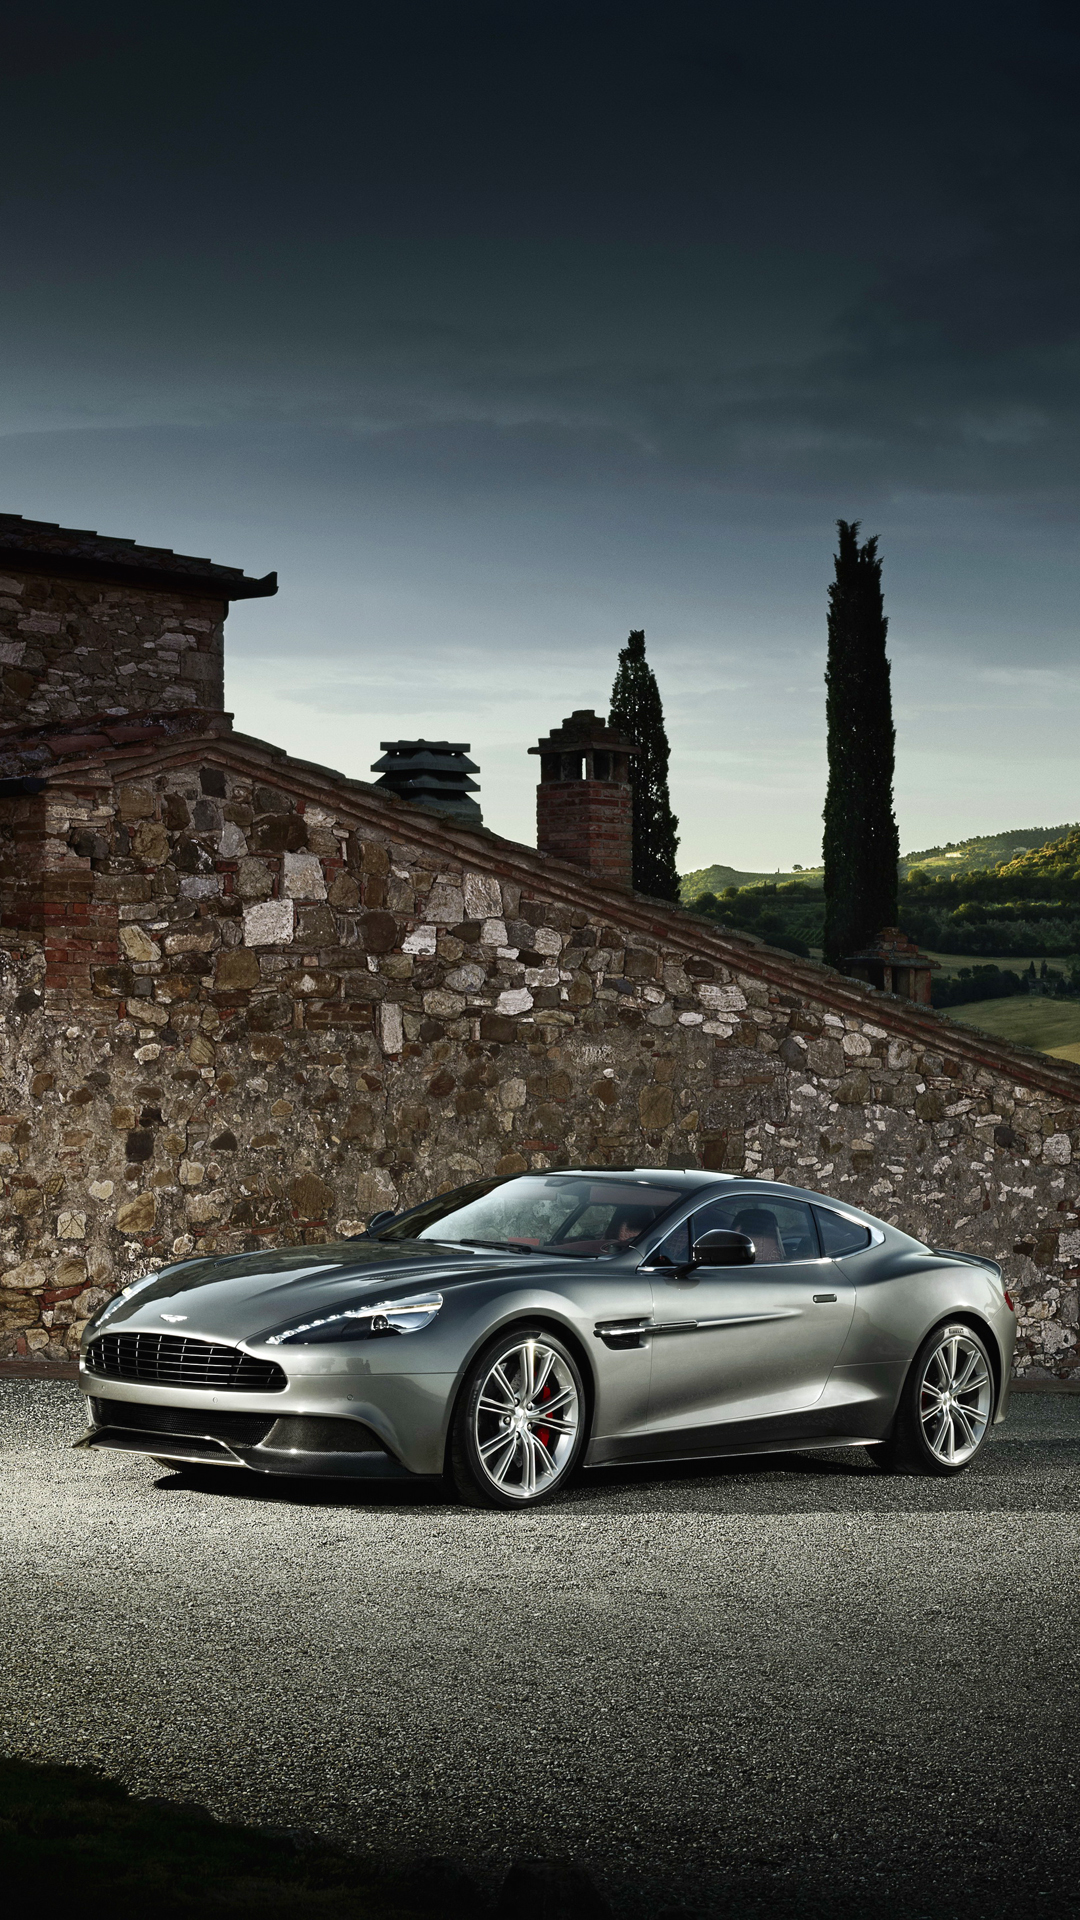 Aston Martin Htc Hd Wallpaper For Htc One